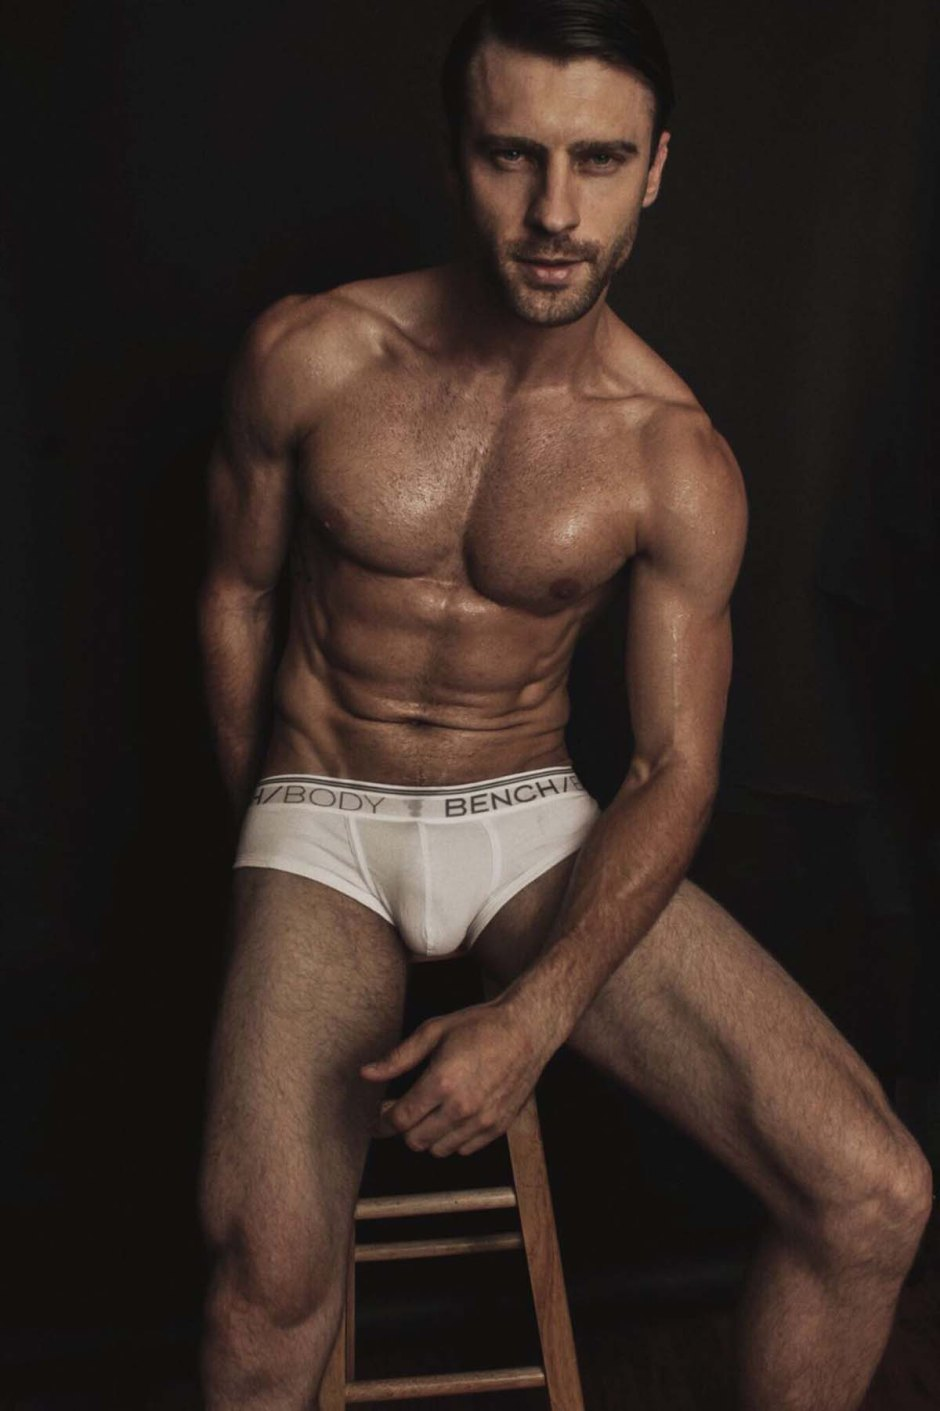 vinicius-piccoli-by-malcolm-joris-for-brazilian-male-model-037